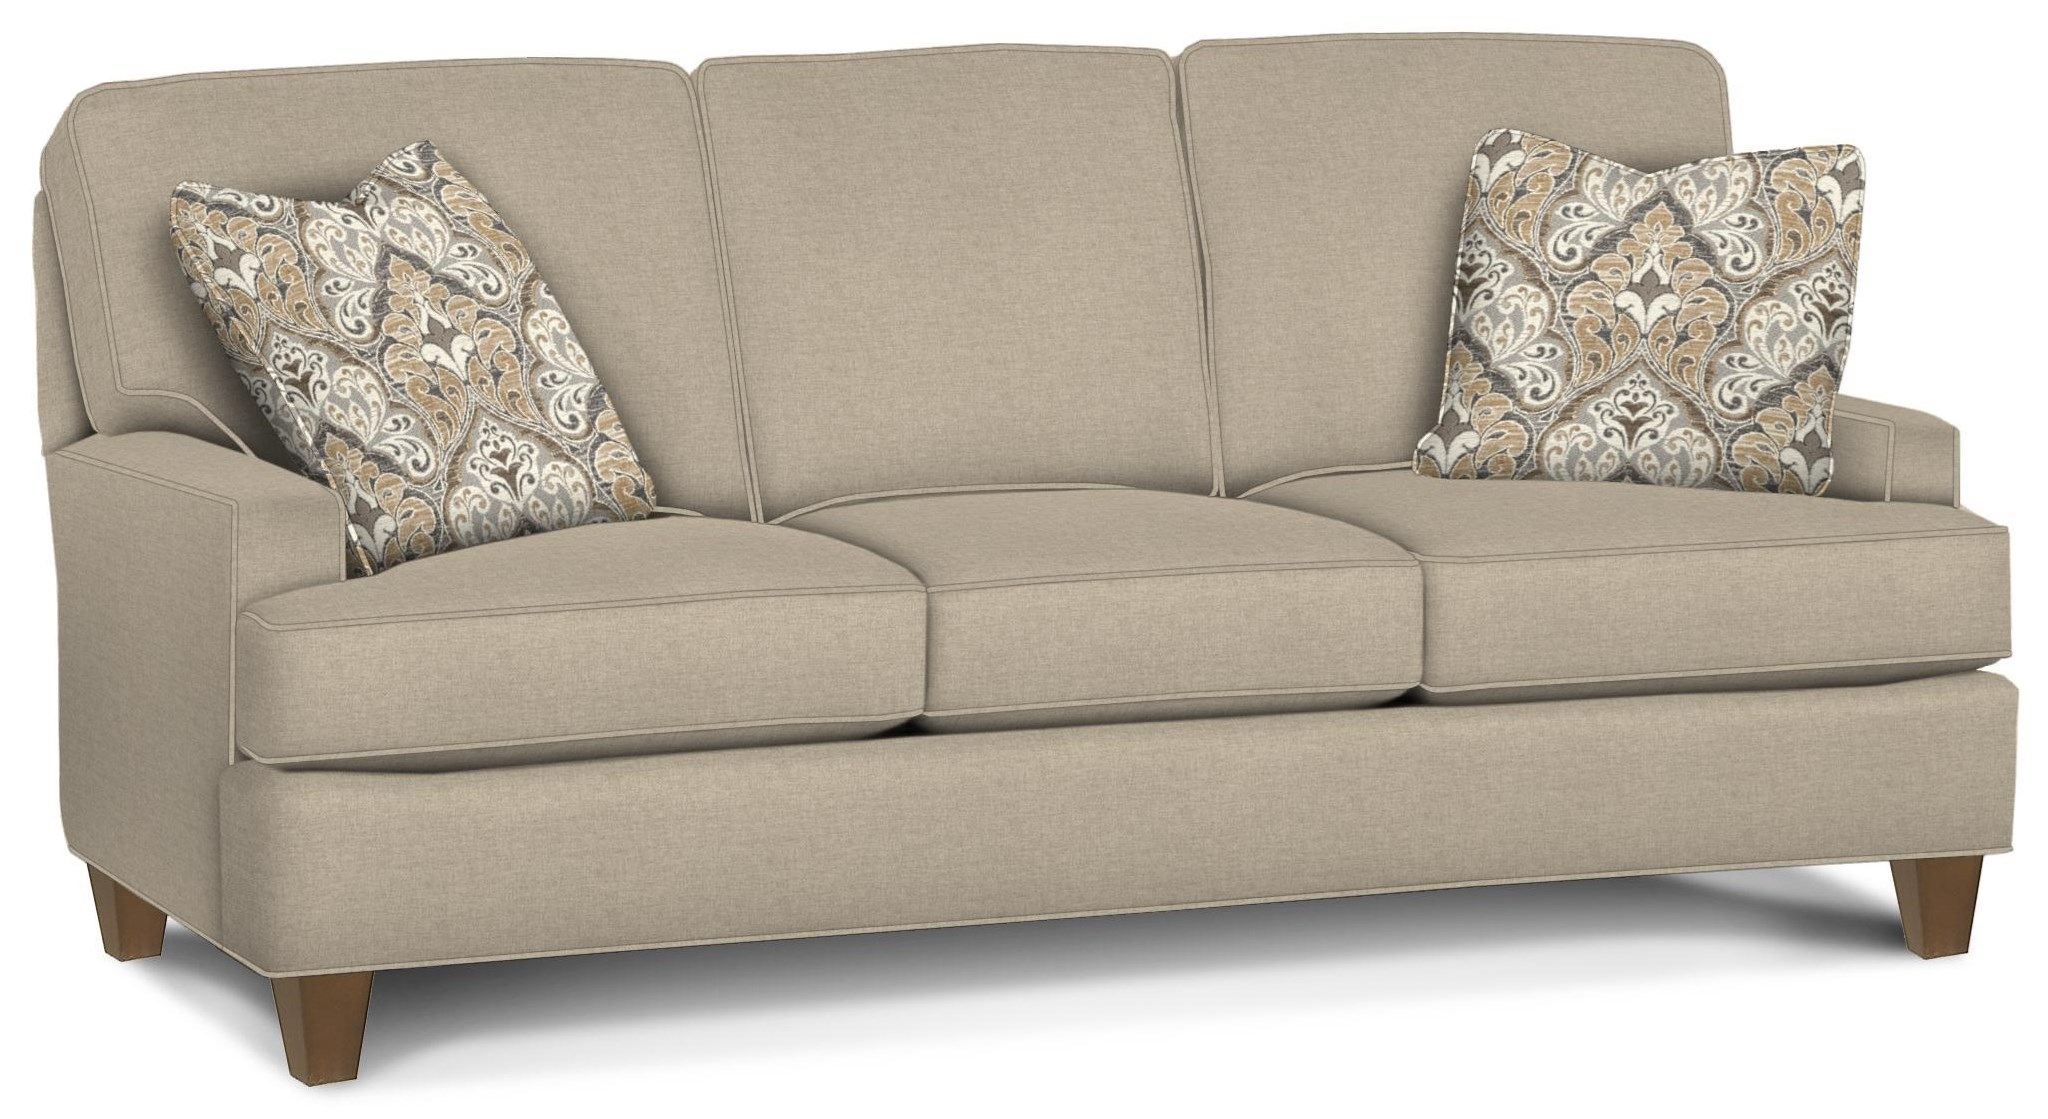 Emily Emily Sofa by King Hickory at Morris Home